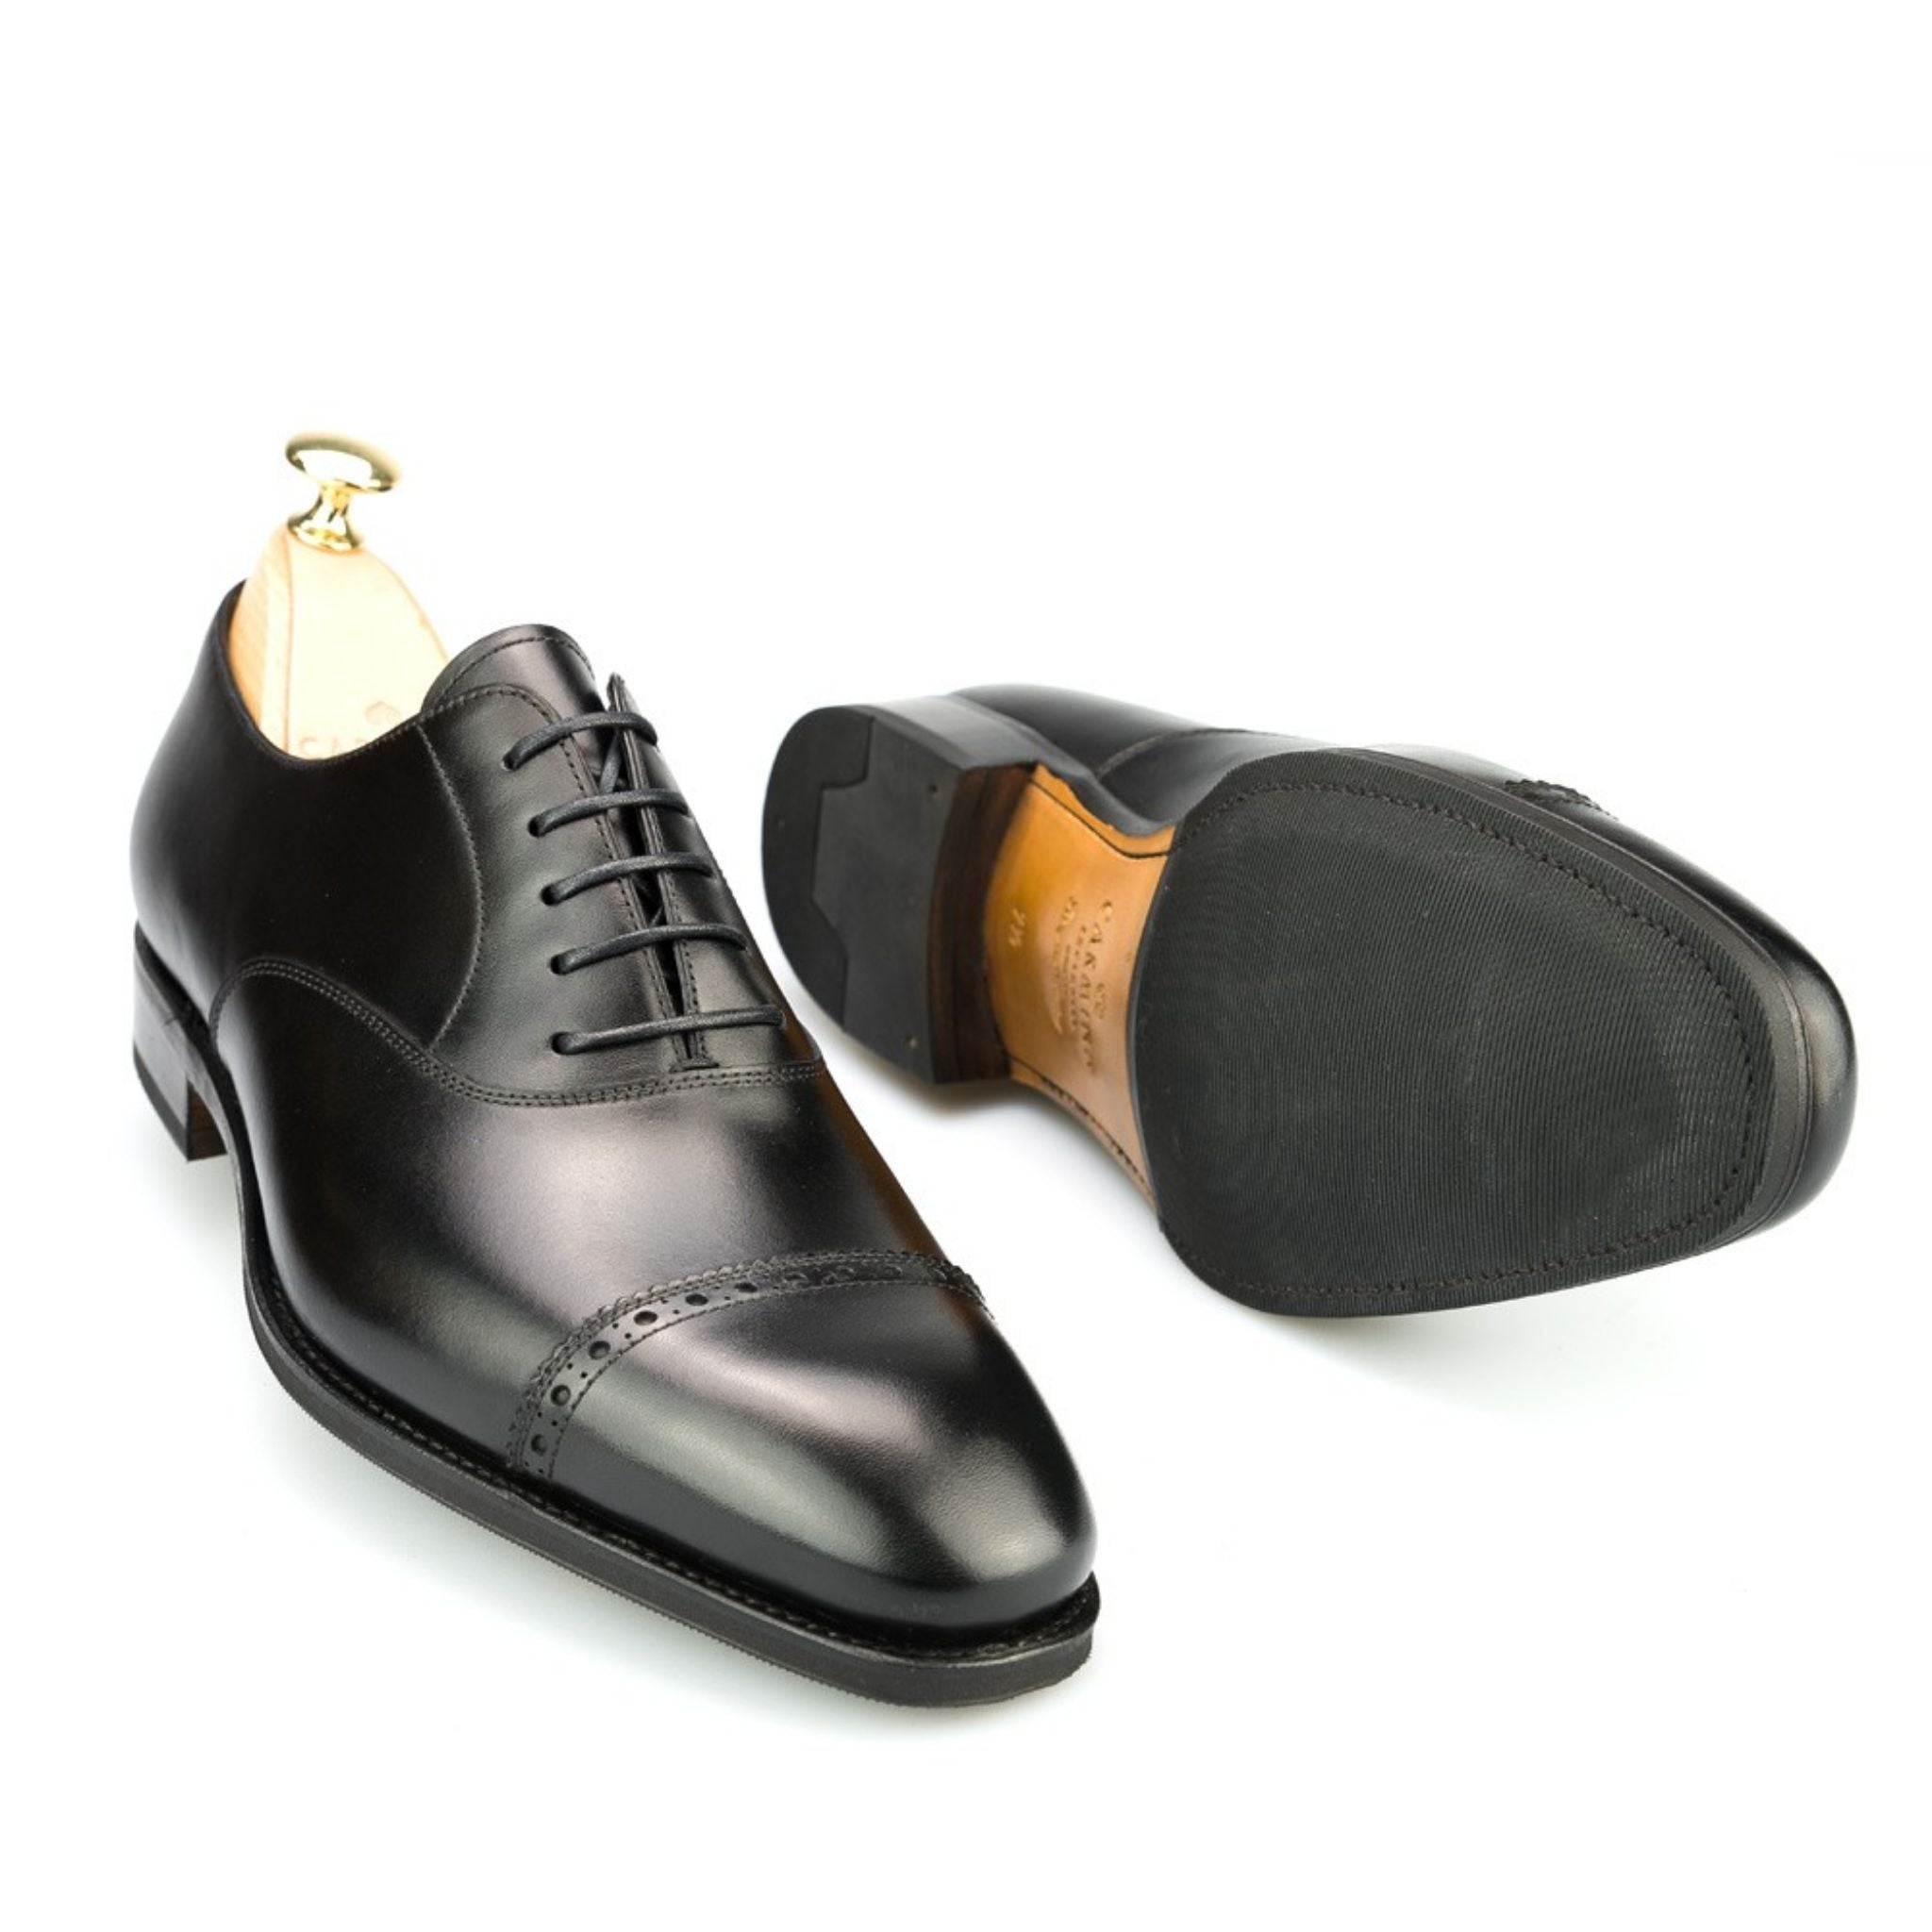 Black cap toe oxfords - Carmina rain last